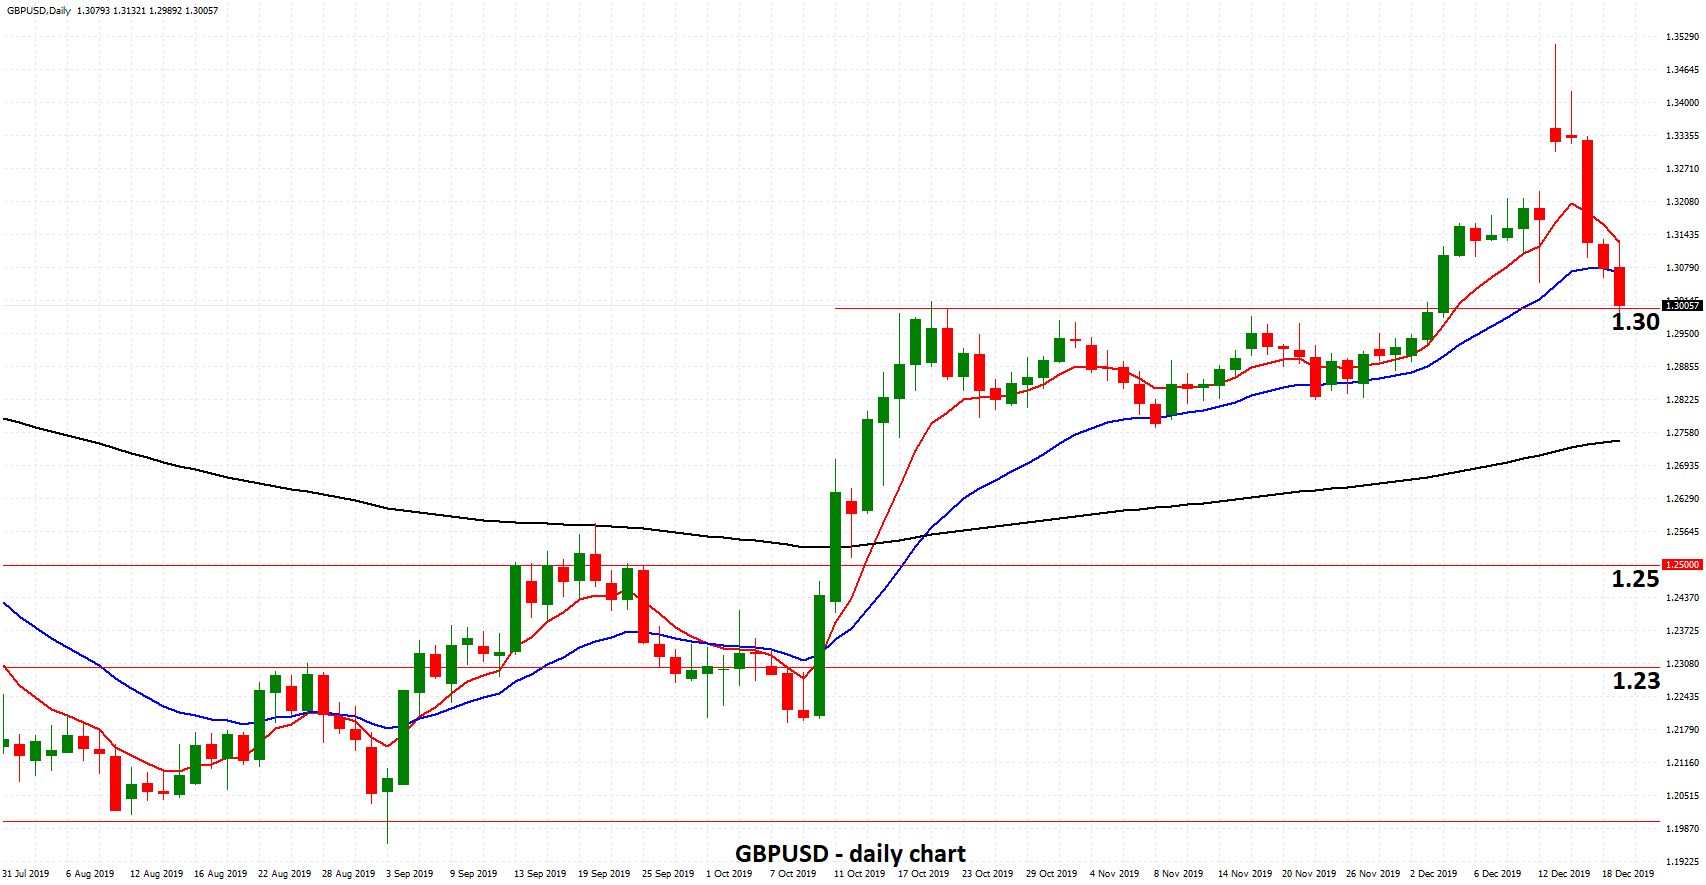 GBPUSD - Drops to Support at 1.30 as BOE Holds Rates Steady